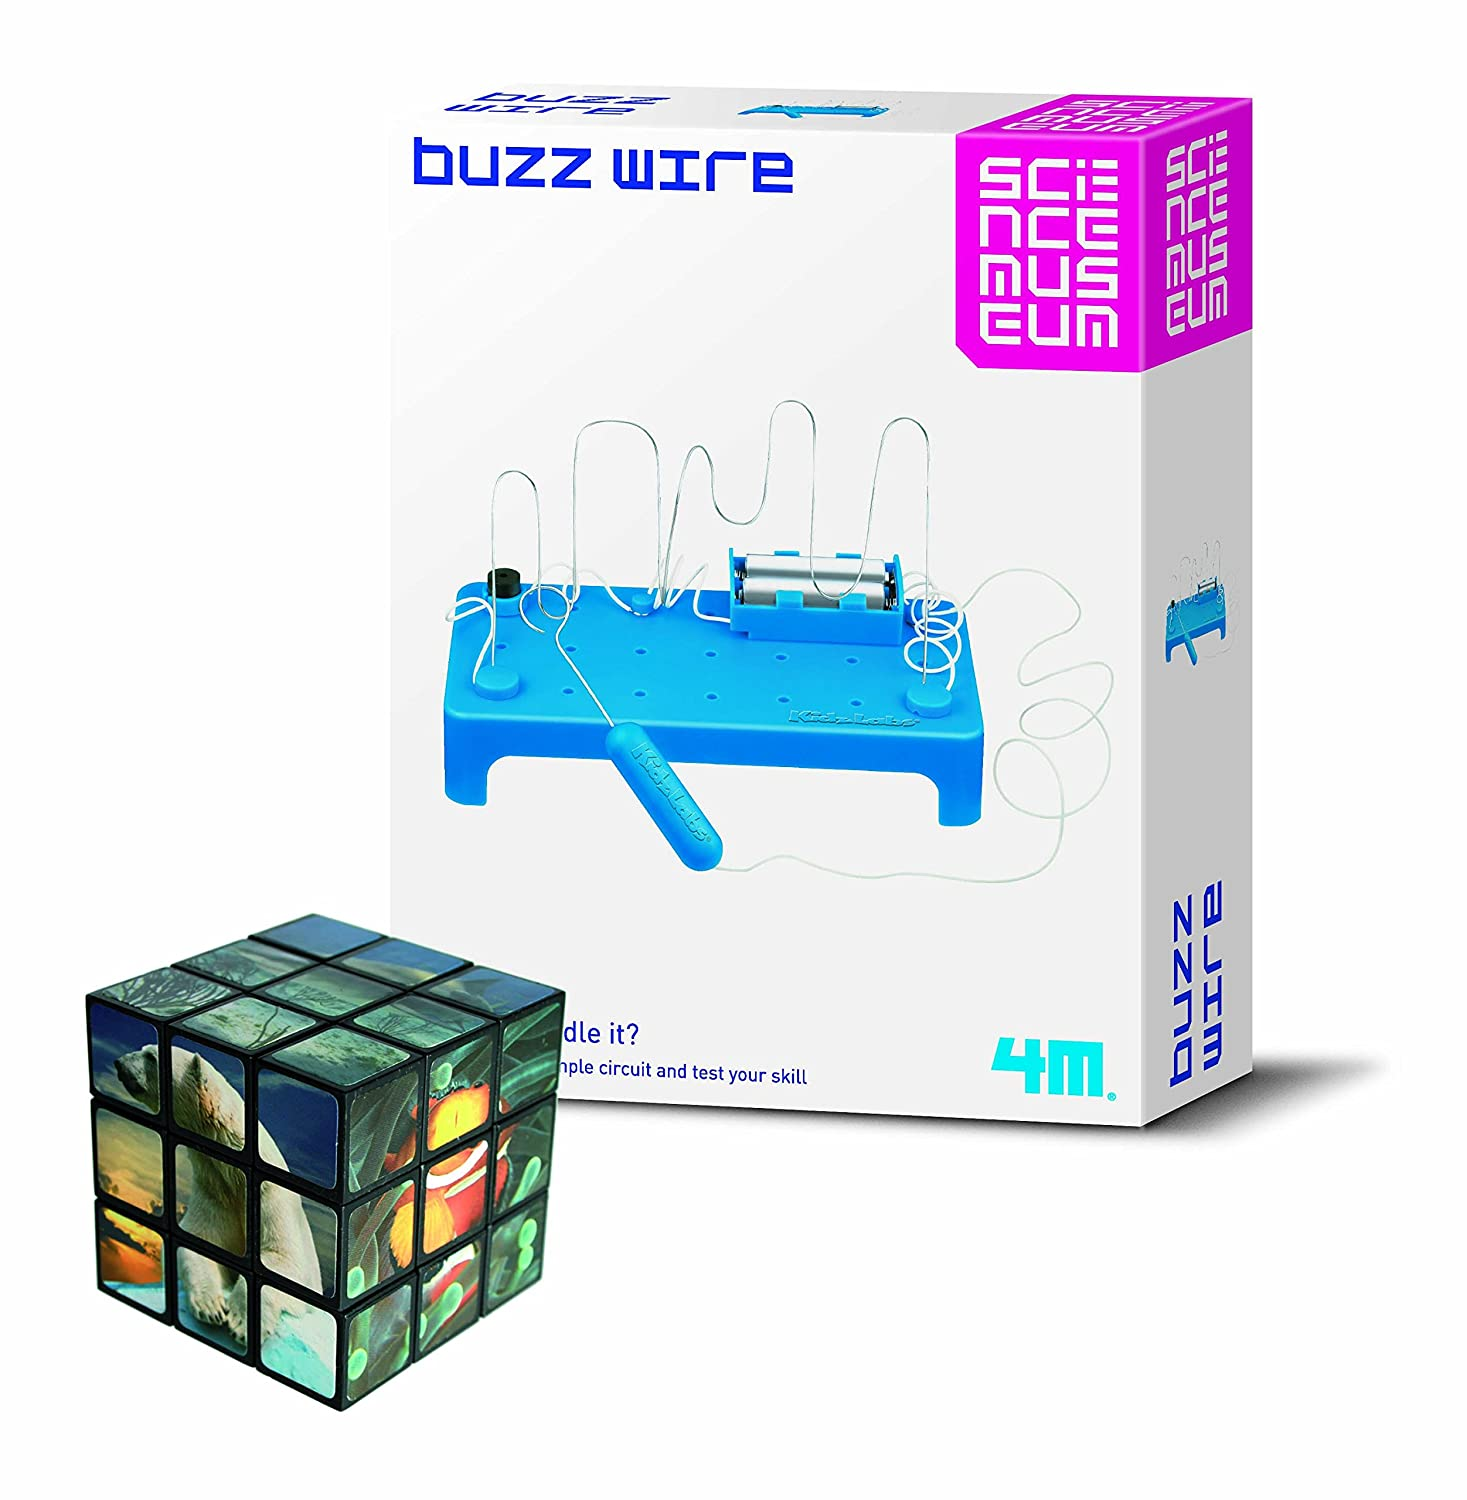 Number One Selling Creative Activity Girls Boys Fun Educational Nce Wiring Diagram Present Idea For Christmas Age 8 Science Museum Buzz Wire Electronics Game With Problem